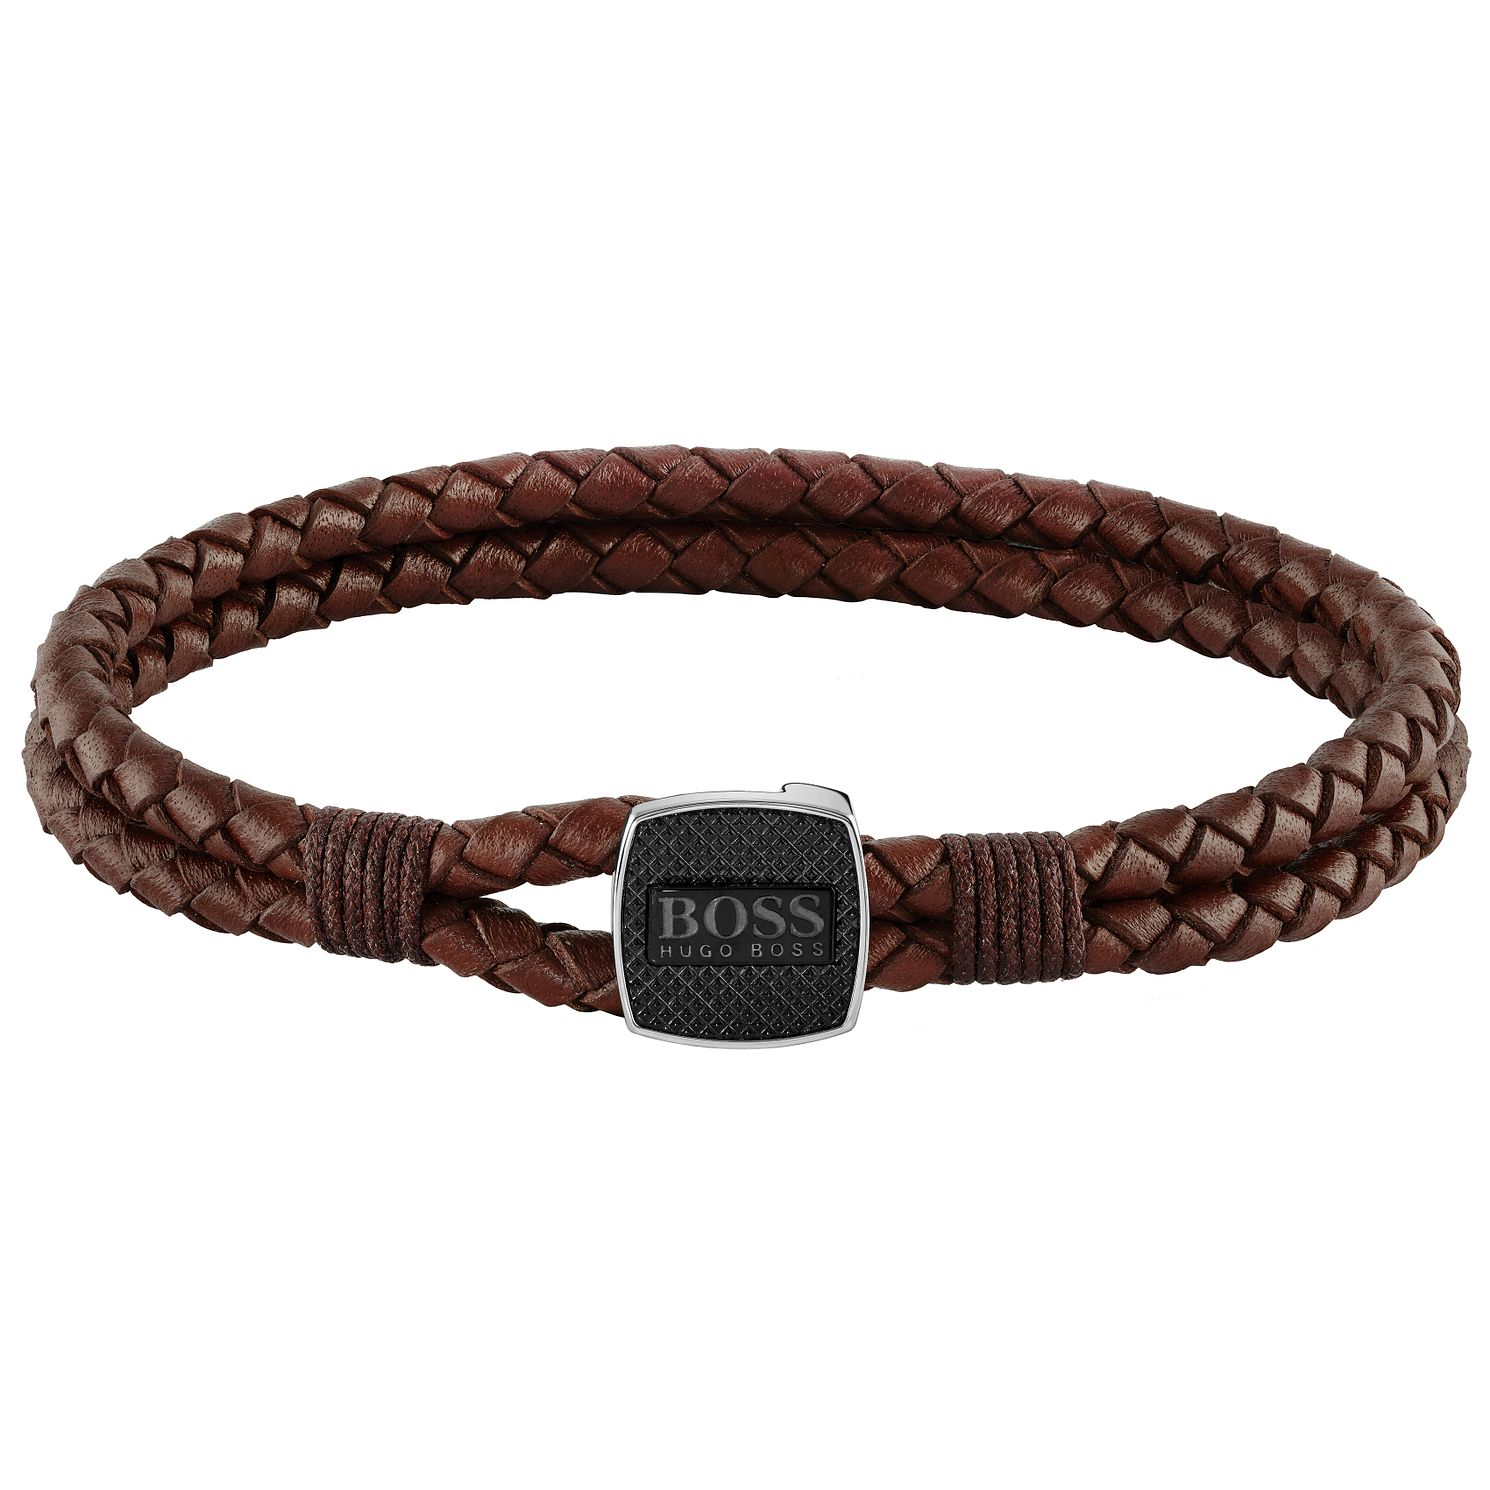 BOSS Seal Men's Brown Leather Bracelet - Product number 5004640